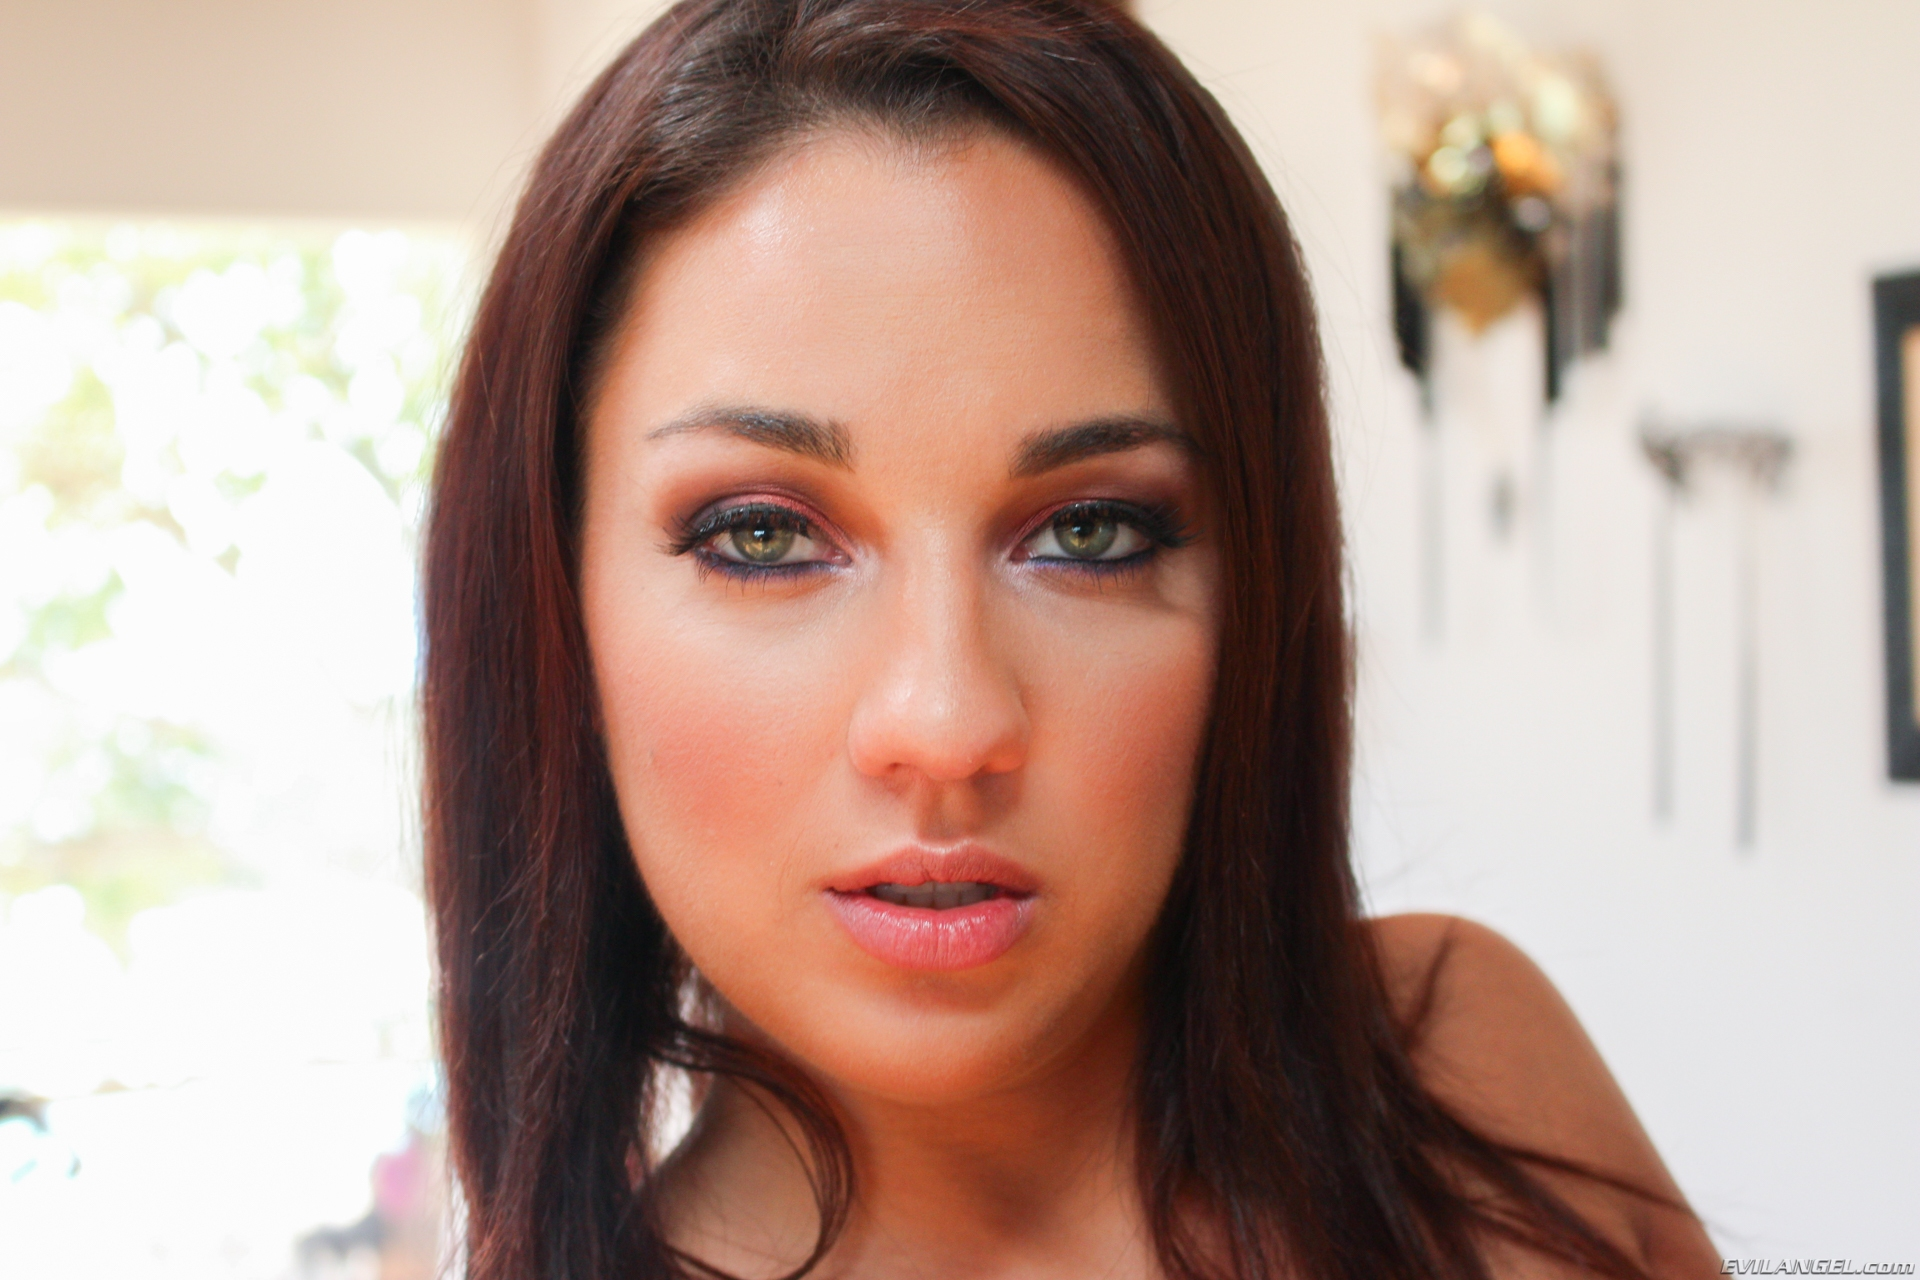 Amara Romani is facesitting John Stagliano for evilangel this week #1